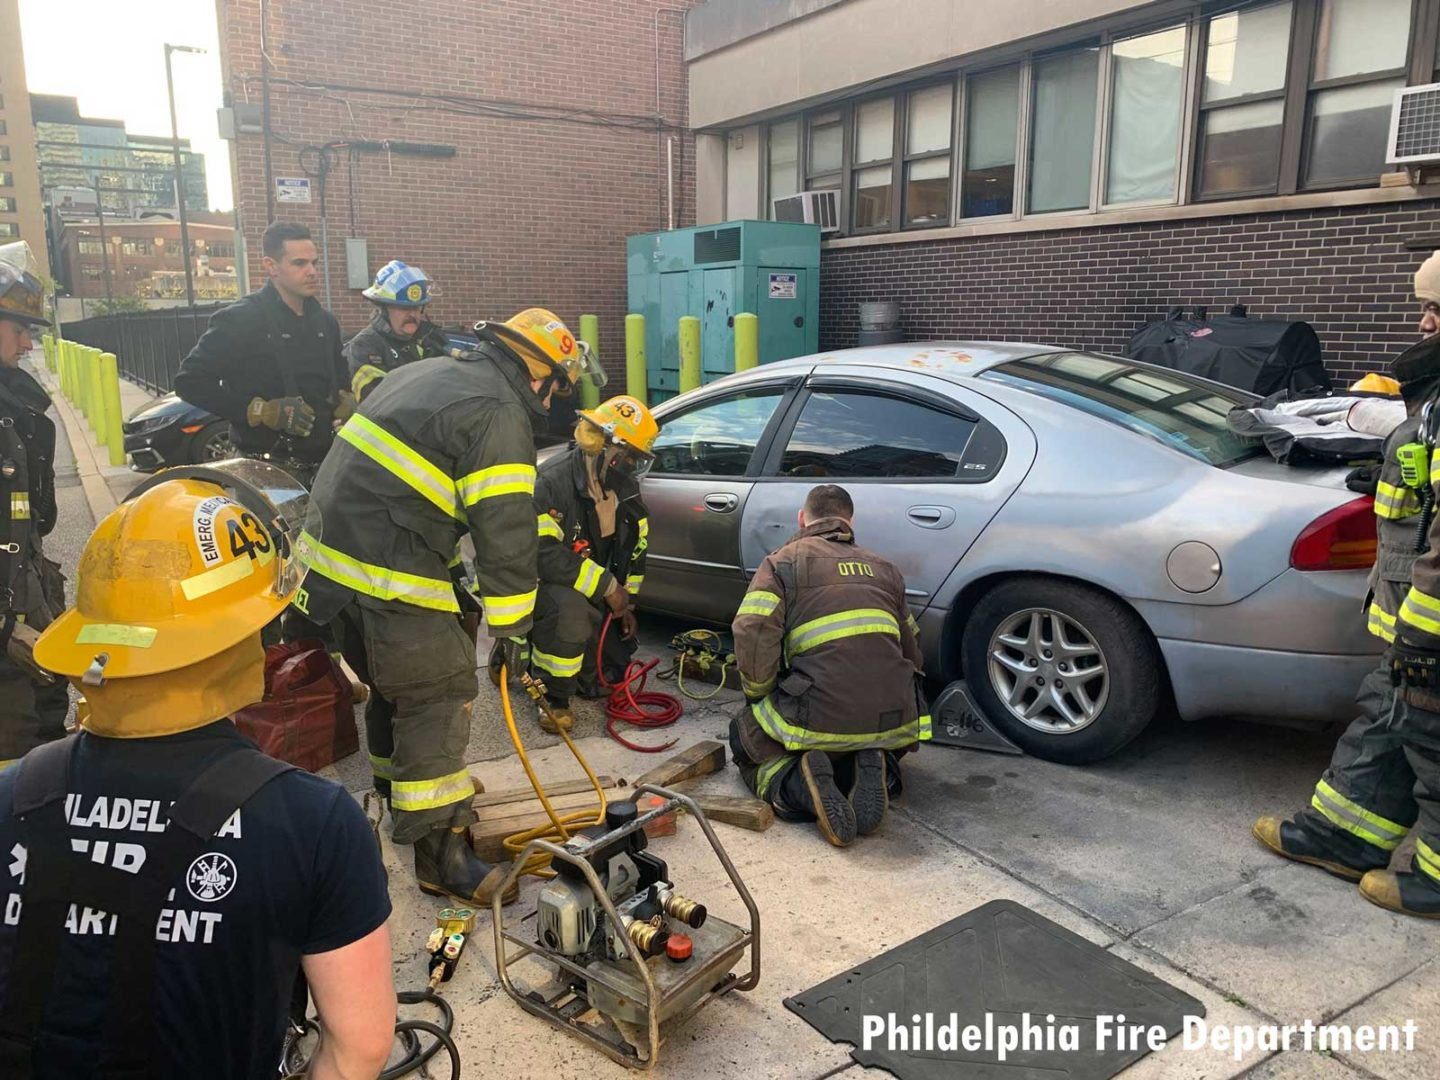 Firefighters training on vehicle rescue in Philadelphia